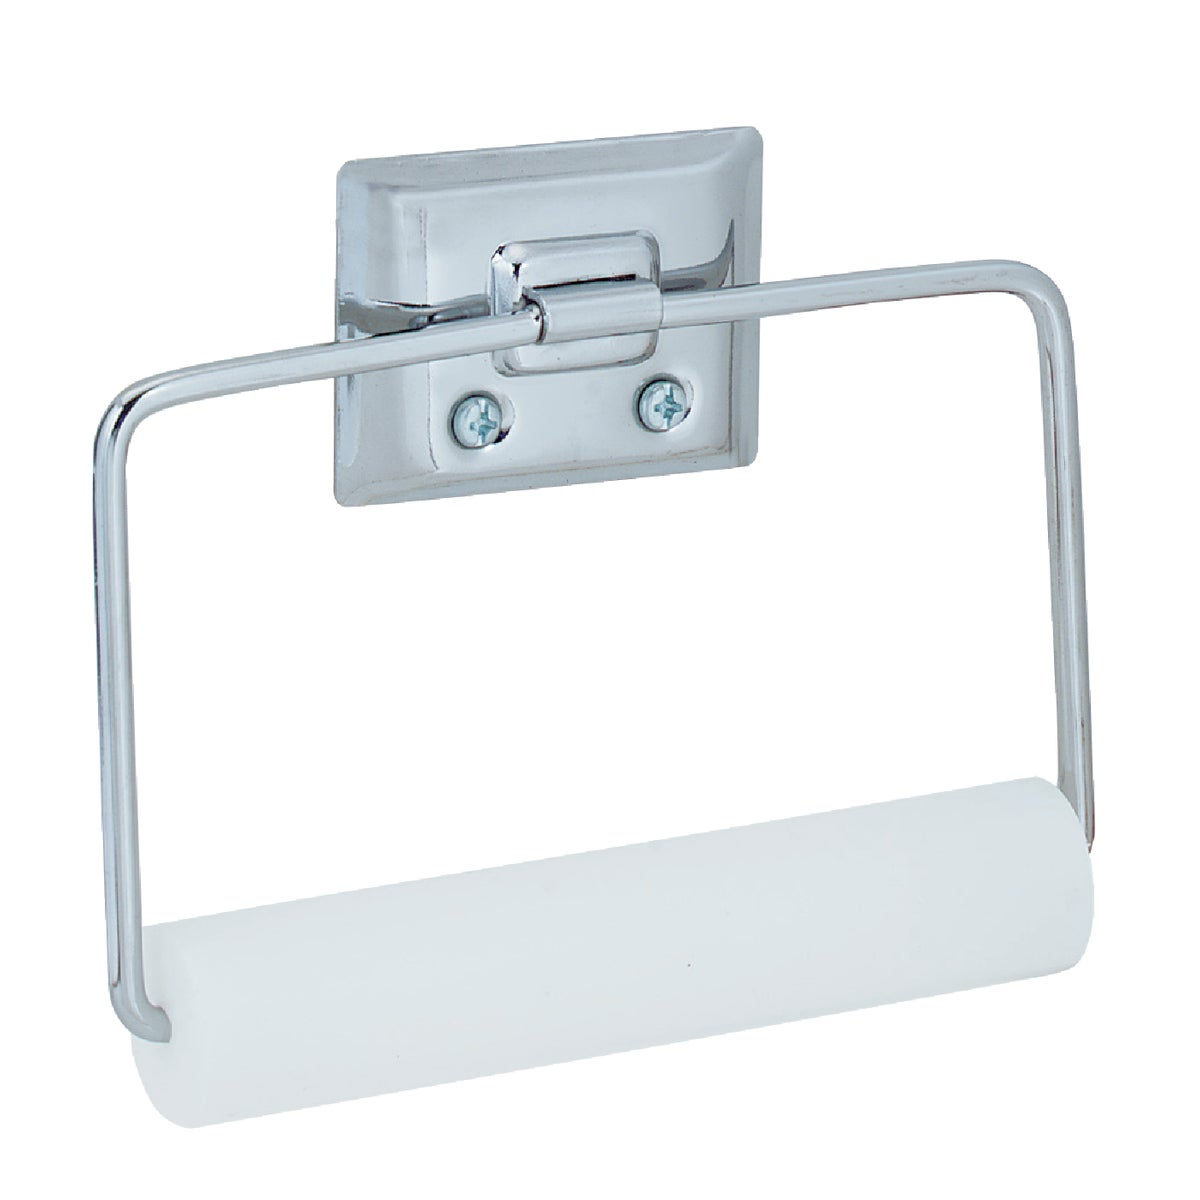 CHROME PAPER HOLDER - 38090 by Decko Bath